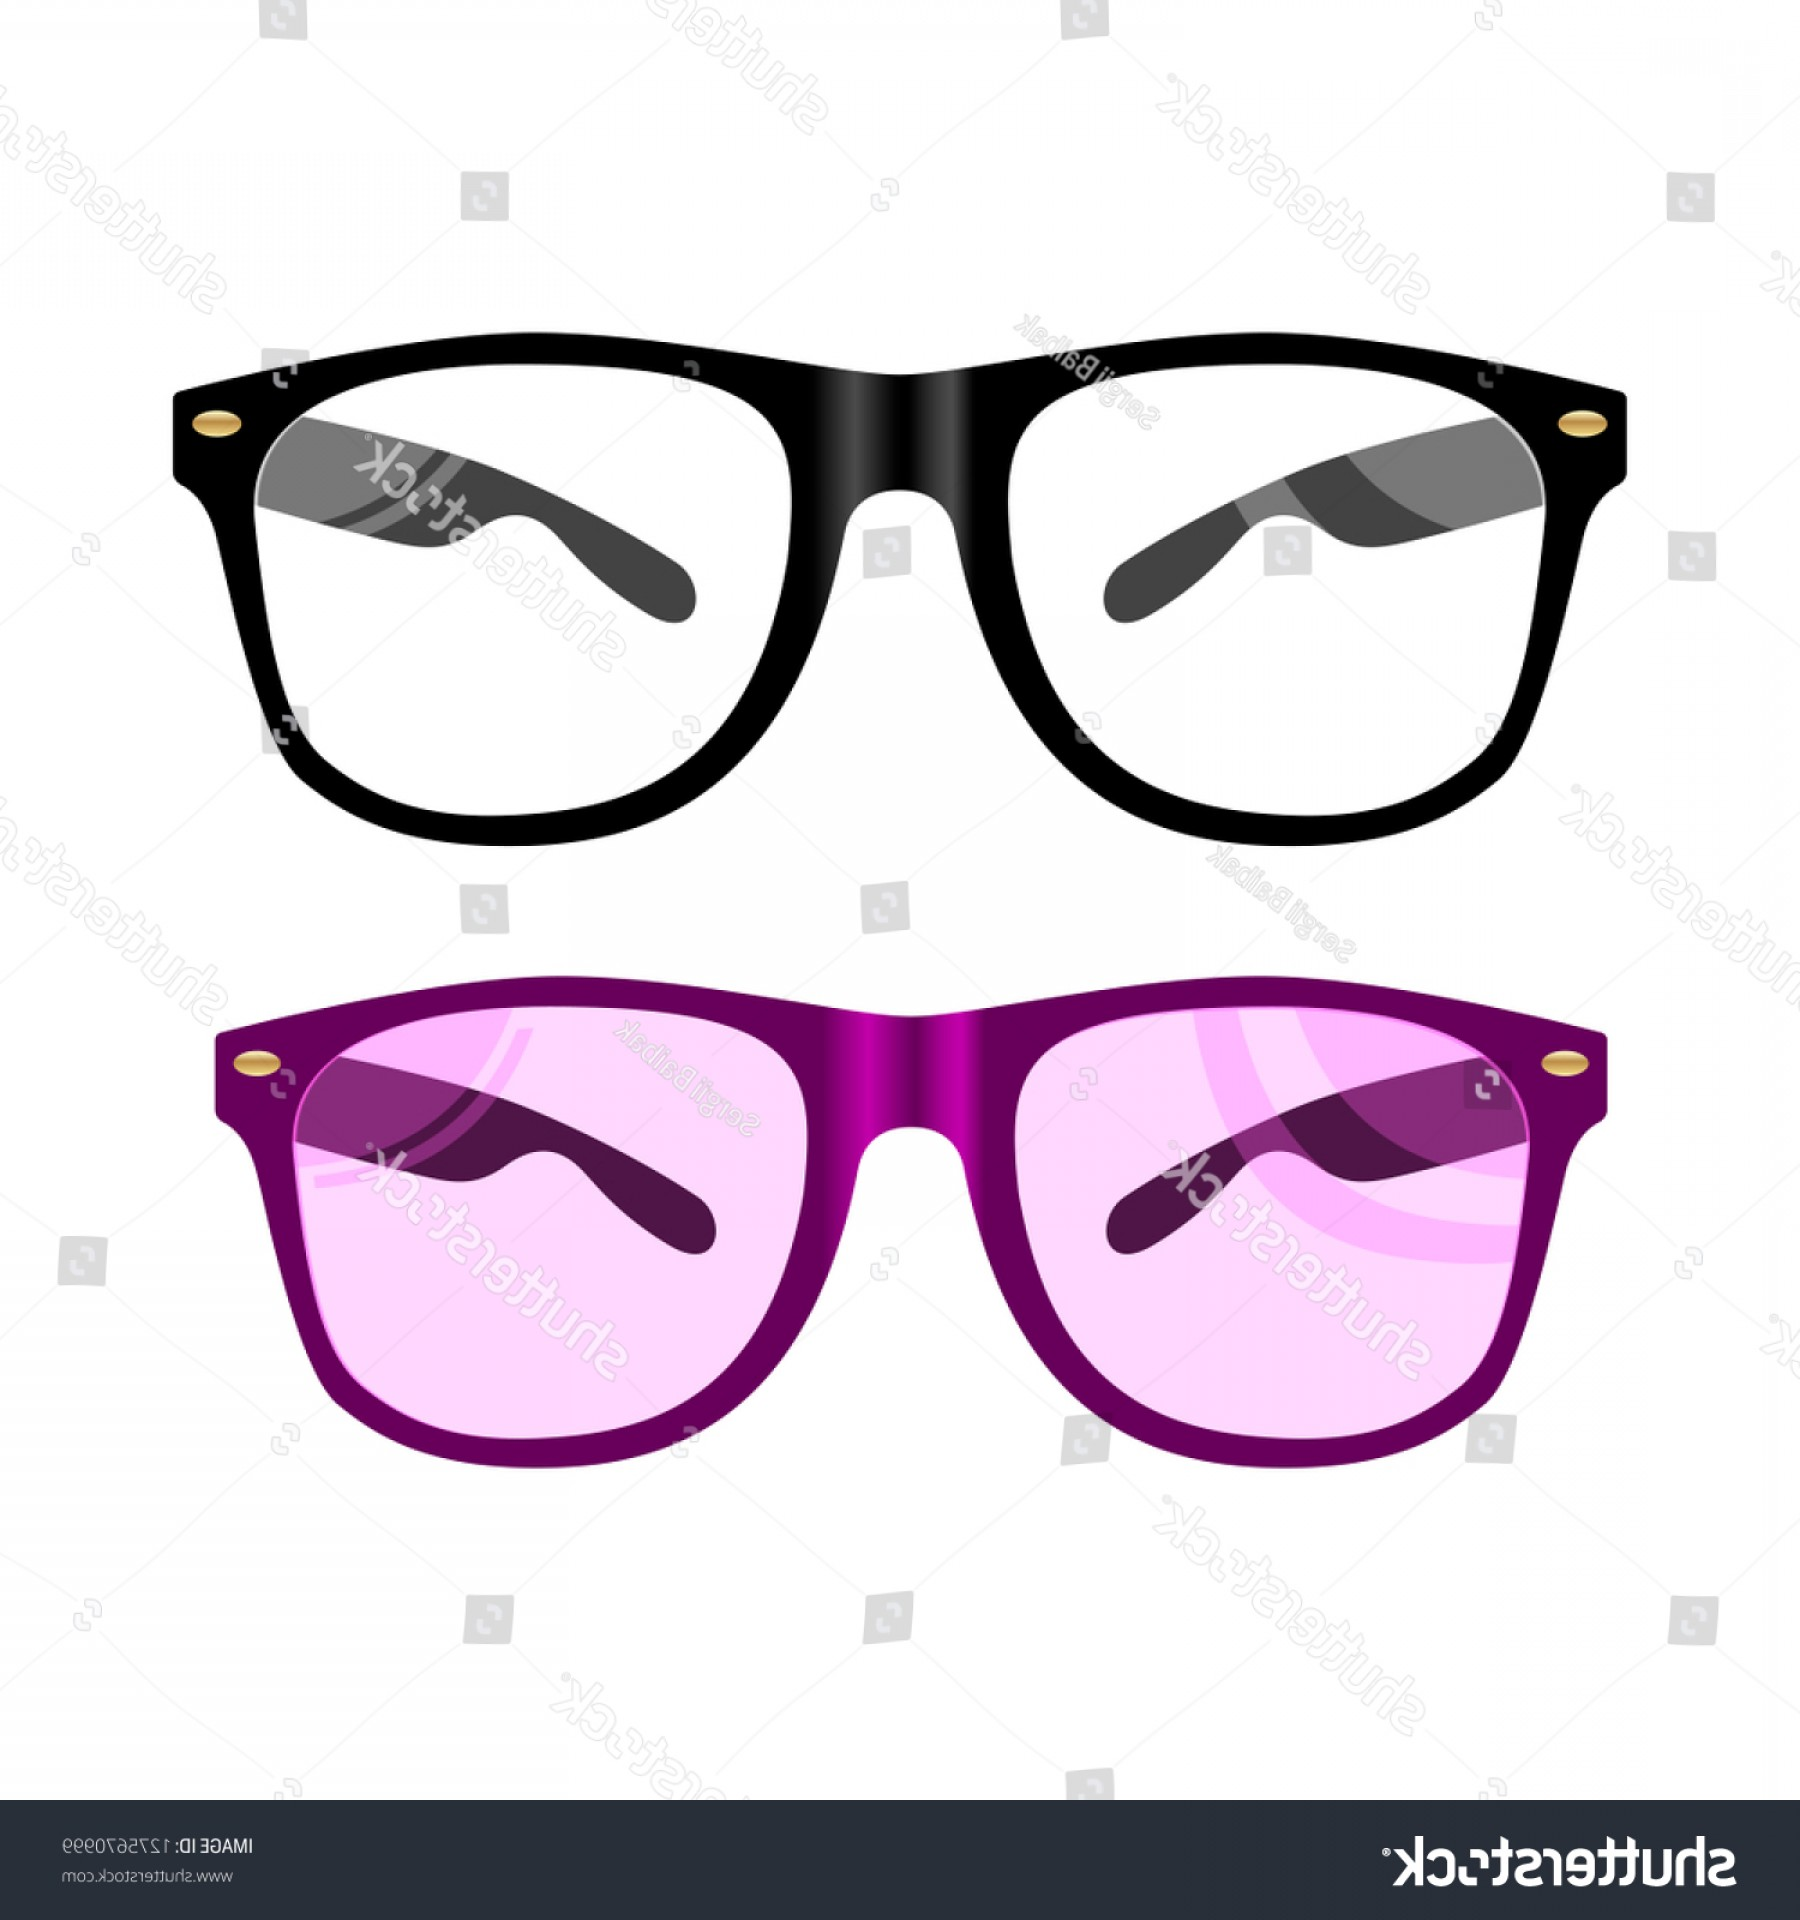 Reading Glasses For Men Vector: Vector Glasses Flat Illustration Black Rim